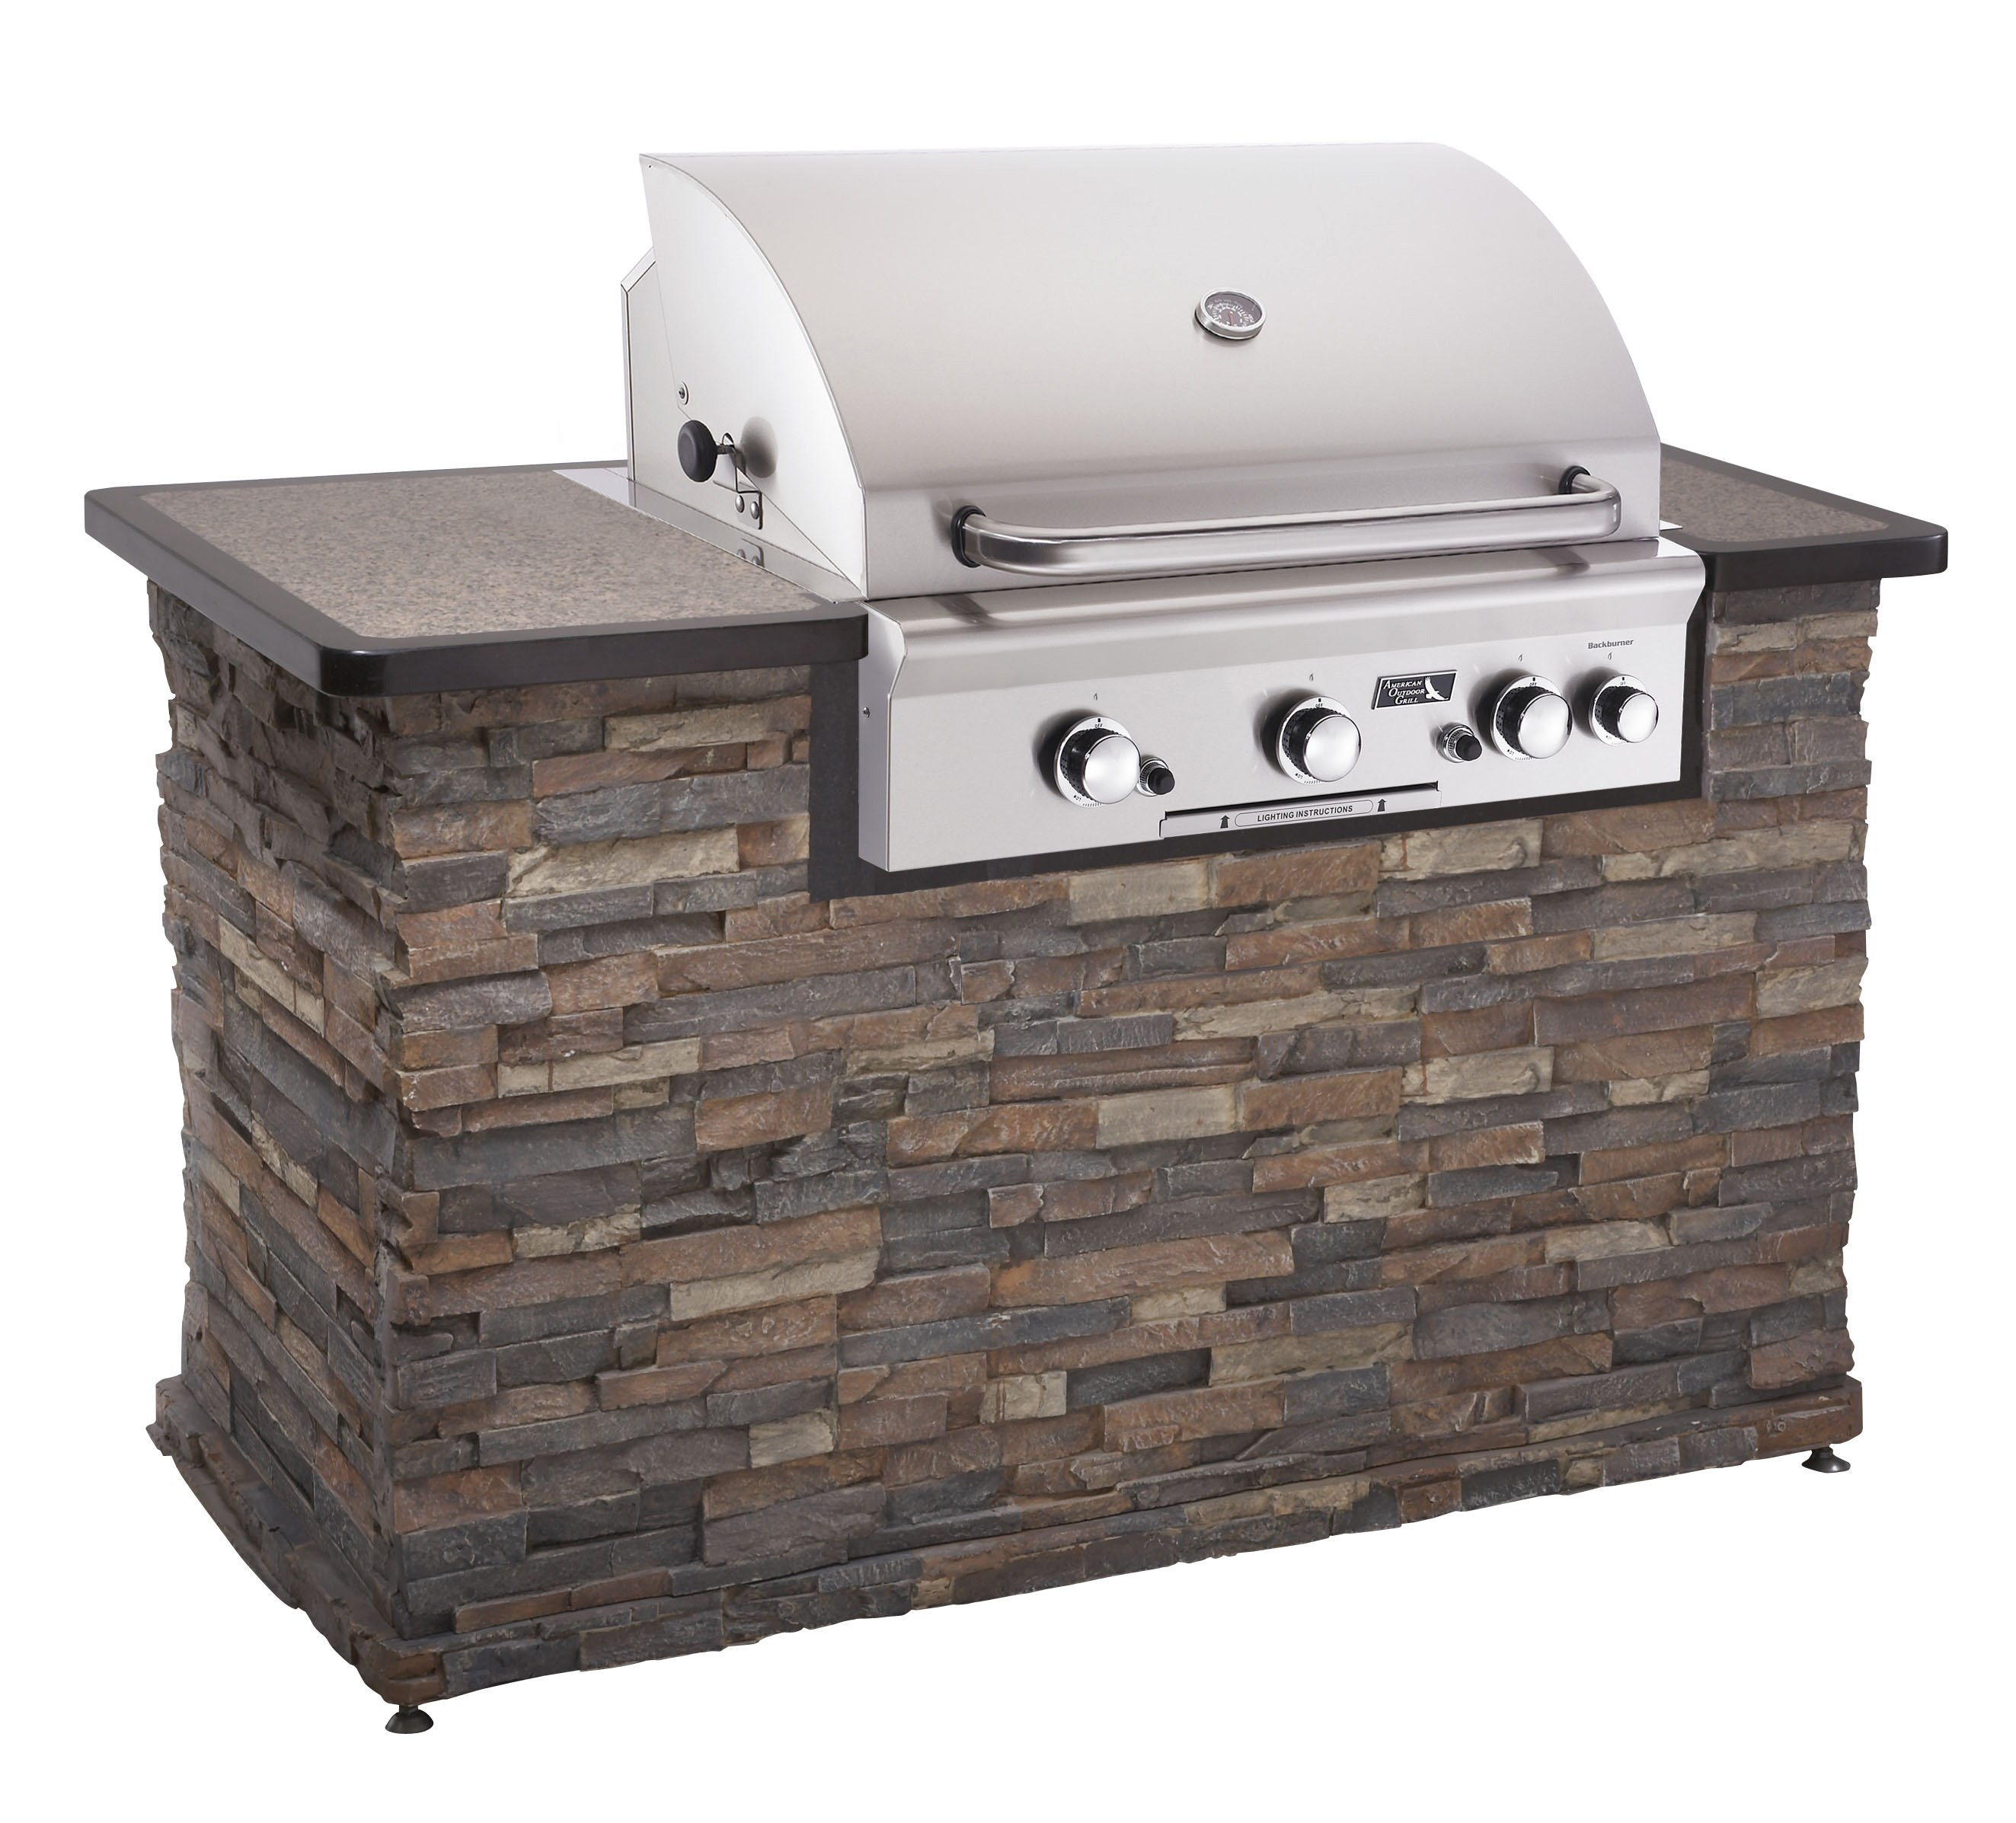 American Outdoor Grill 30 Built In Coastroad Online